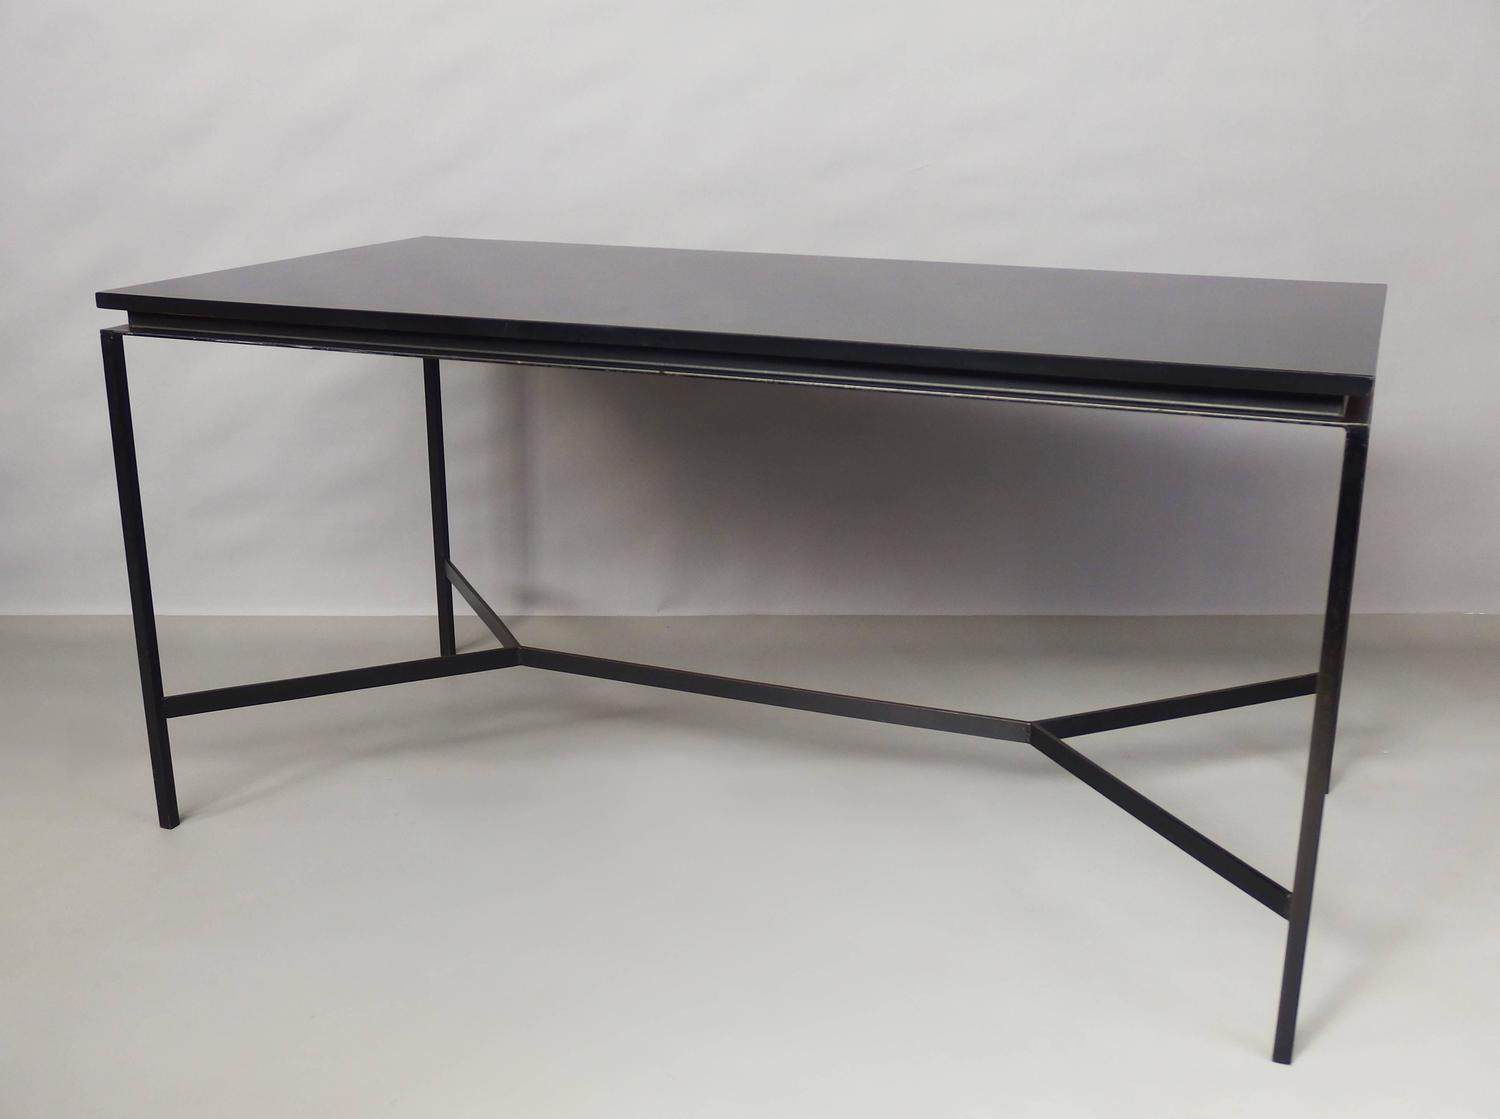 cm172 table by pierre paulin for sale at 1stdibs. Black Bedroom Furniture Sets. Home Design Ideas